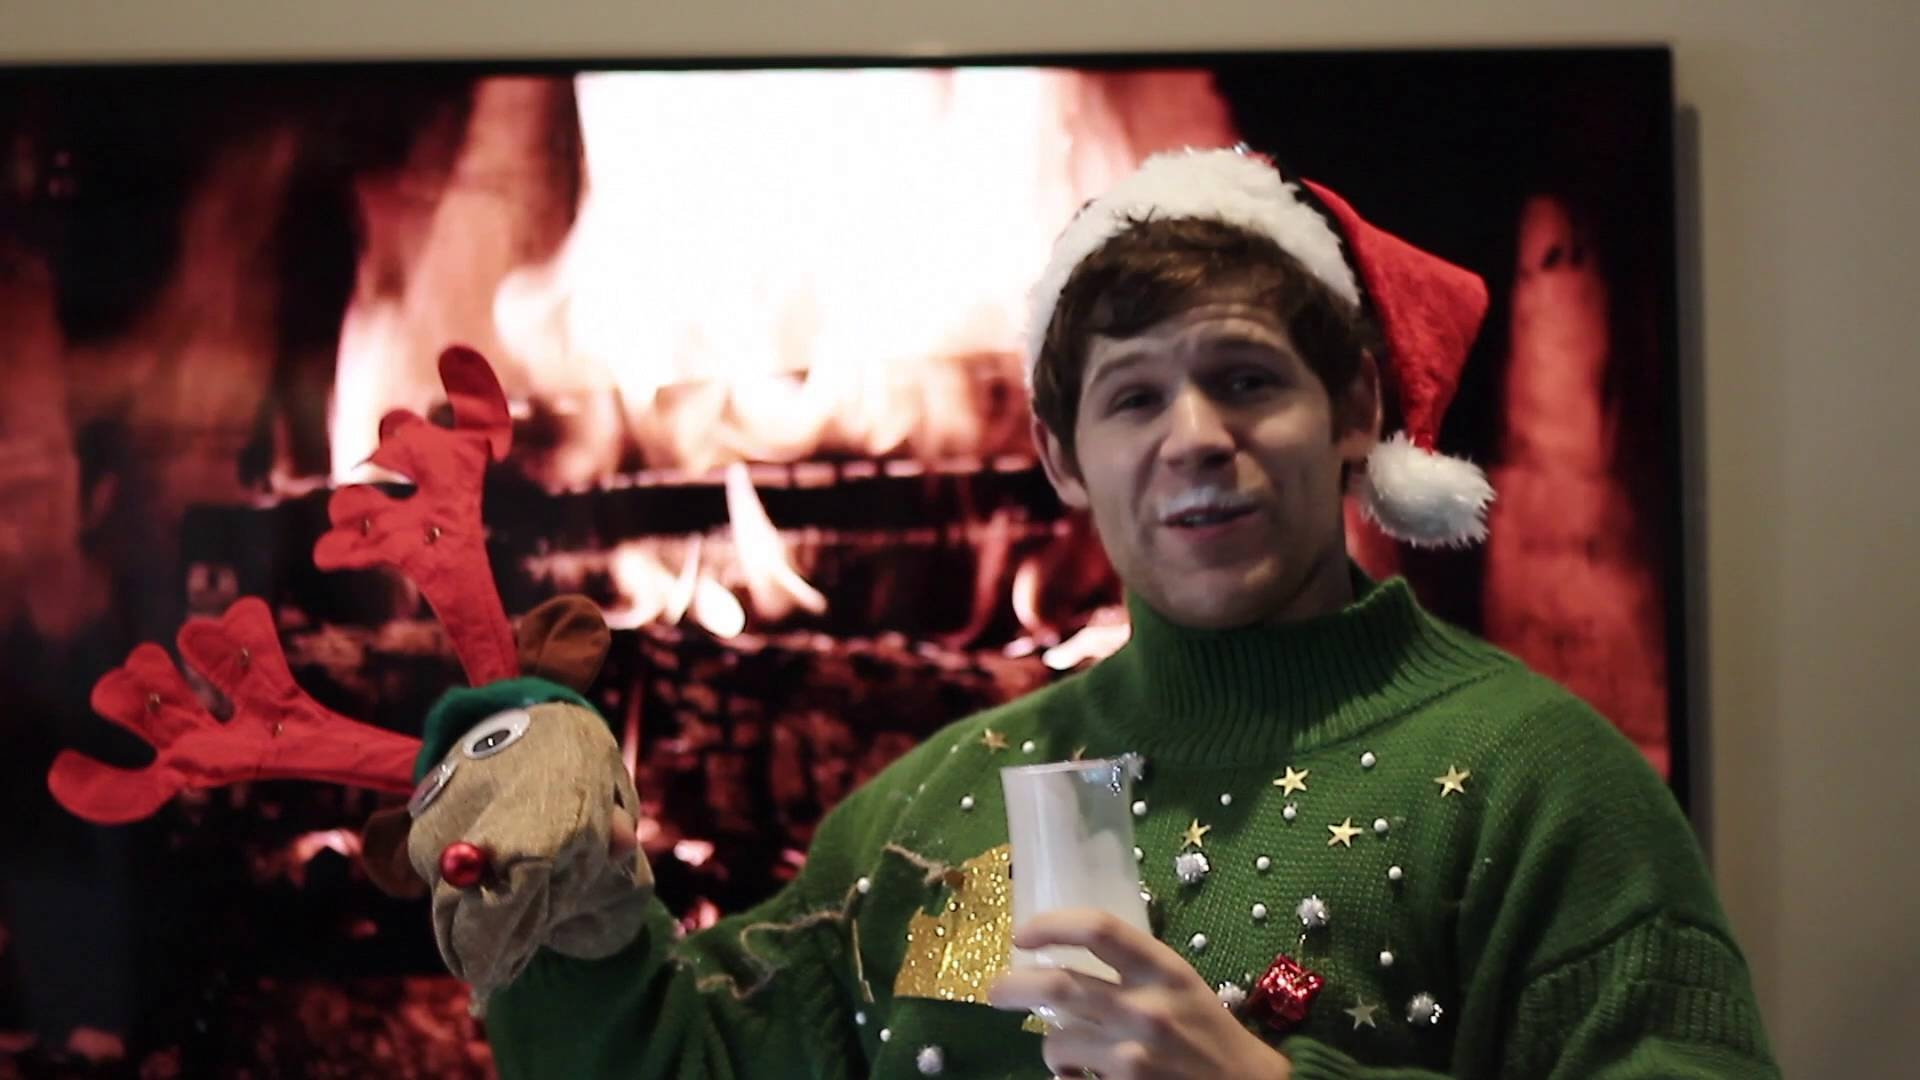 Ugly Christmas Sweater Song by Brad Allingham